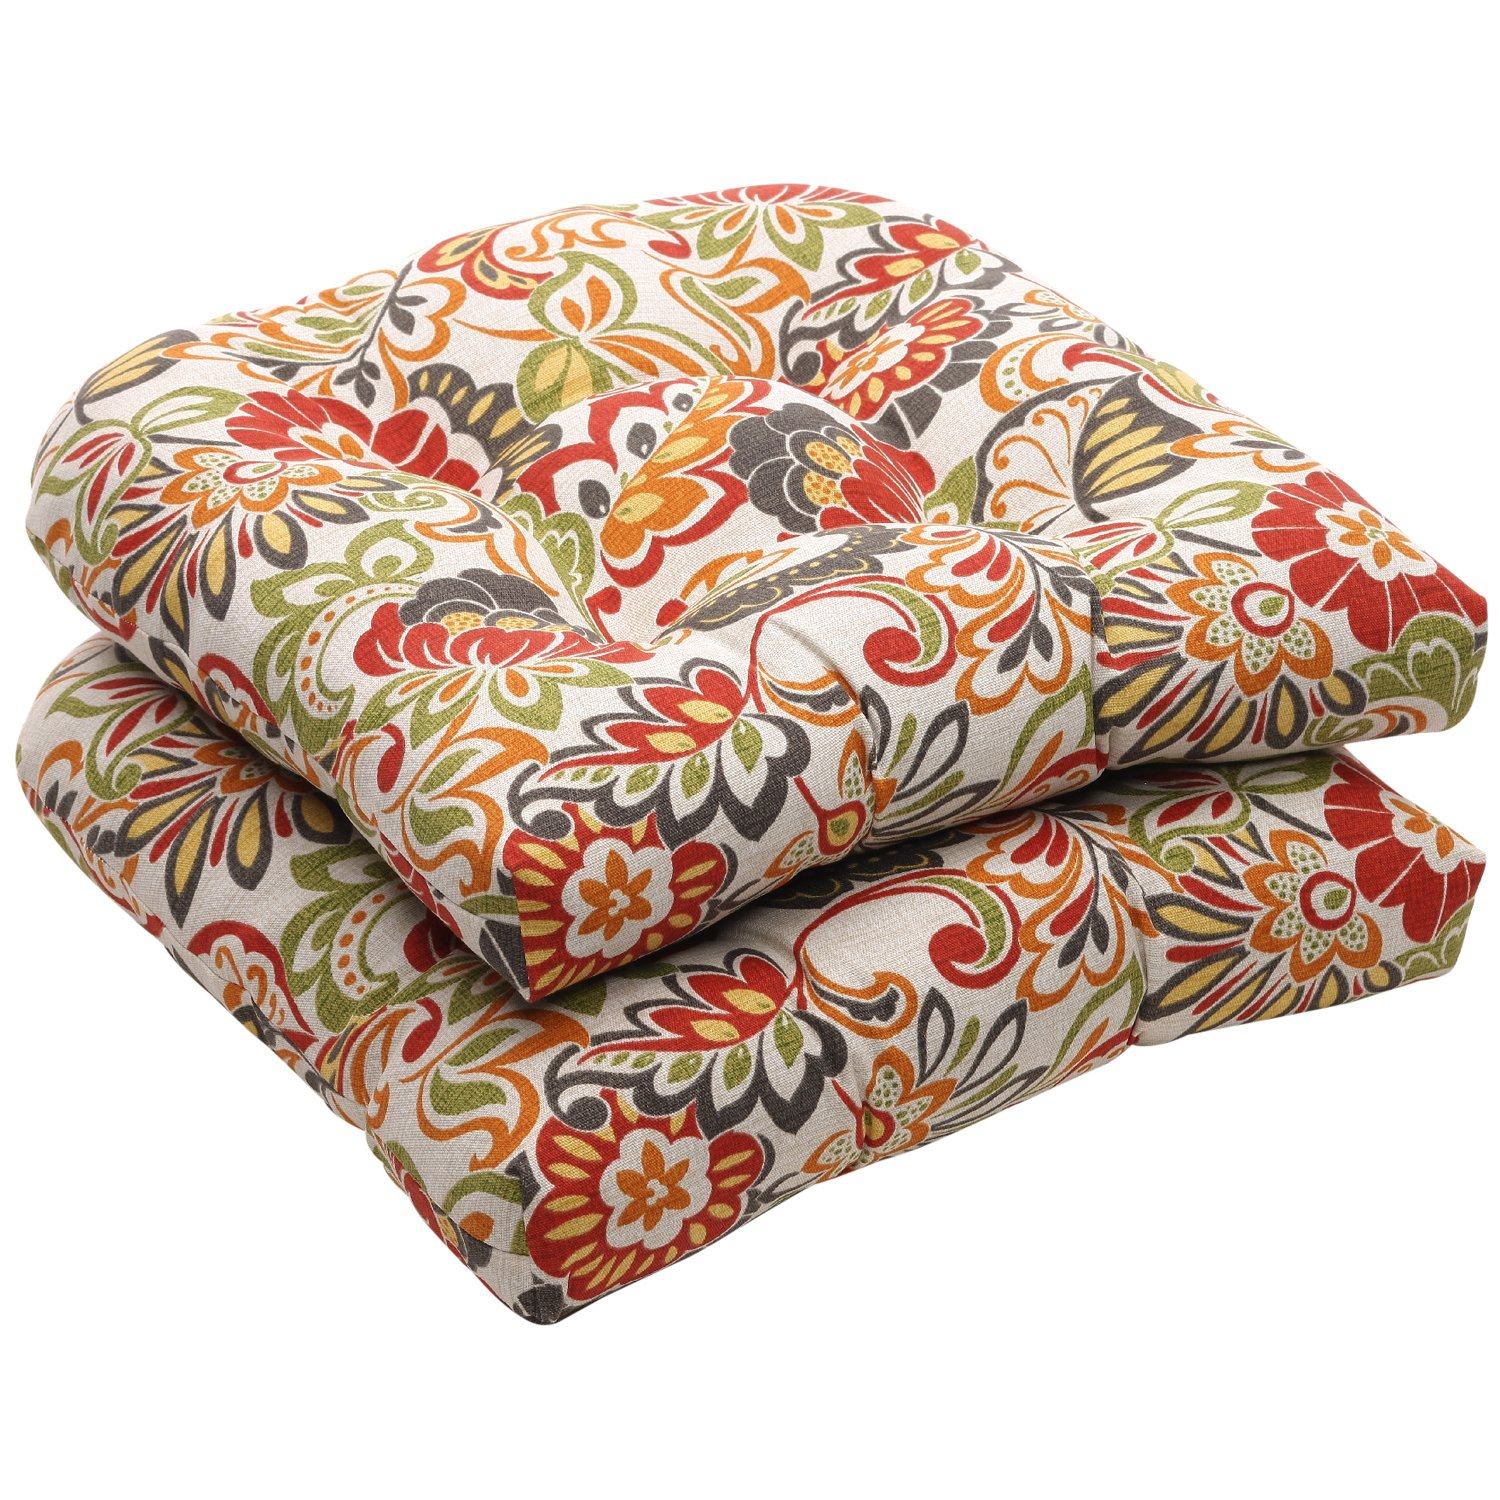 Amazon.com: Pillow Perfect Indoor/Outdoor Multicolored Modern Floral Wicker  Seat Cushions, 2-Pack: Home & Kitchen - Amazon.com: Pillow Perfect Indoor/Outdoor Multicolored Modern